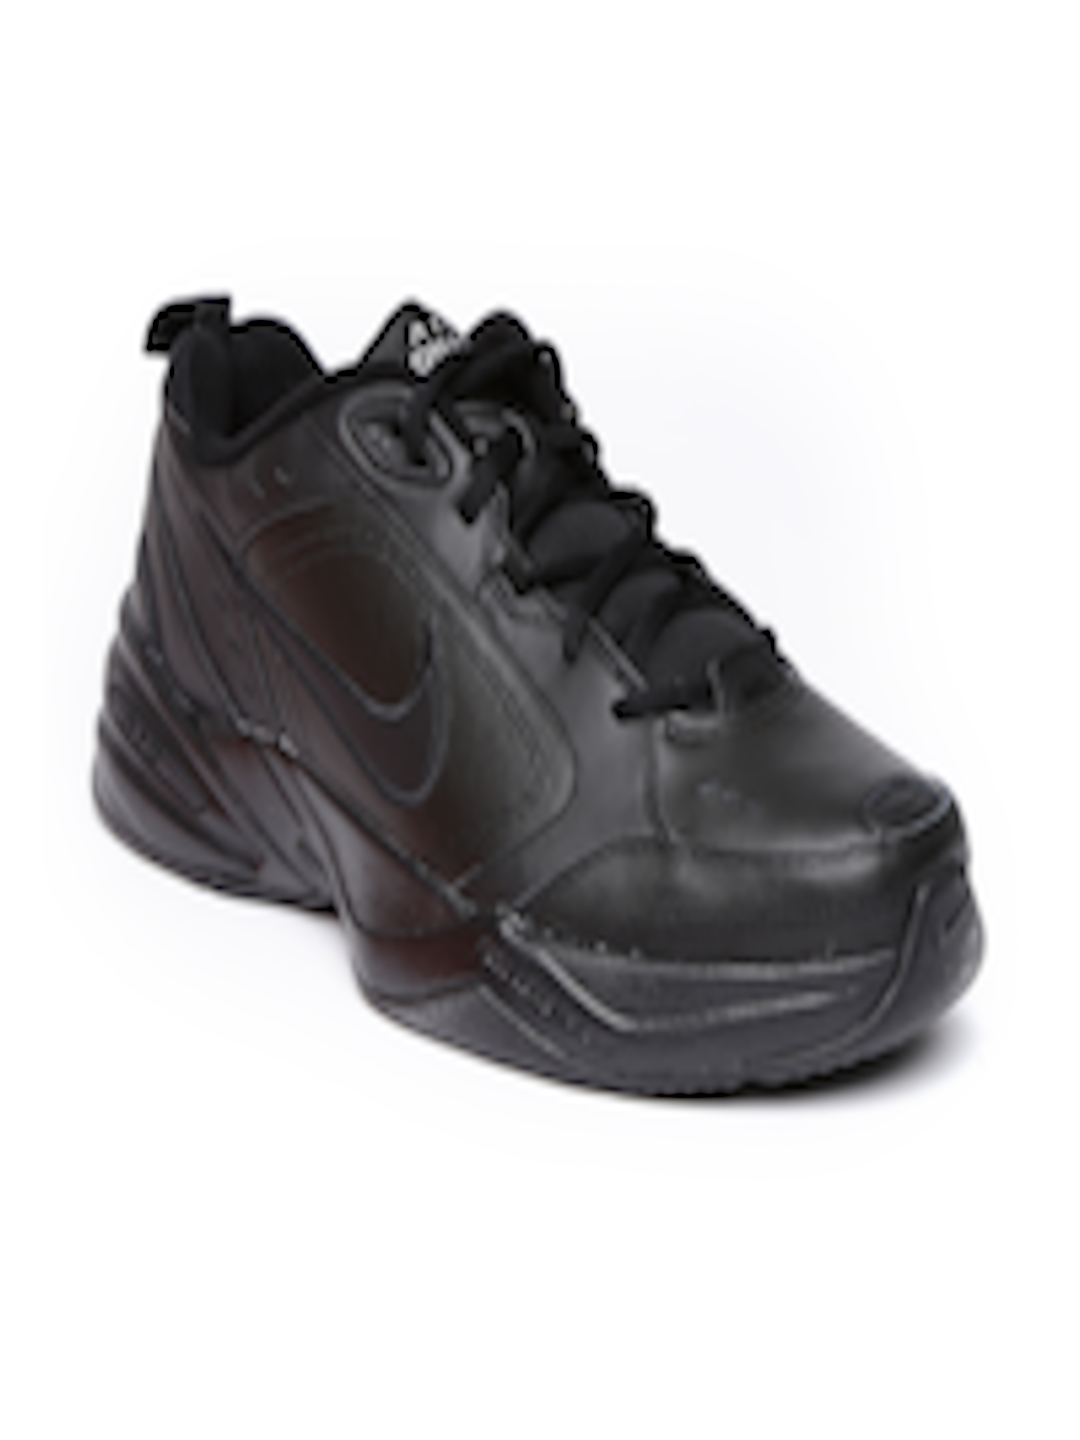 incredible prices special sales free shipping Buy Nike Men Black AIR MONARCH IV Training Shoes - - Footwear for Men